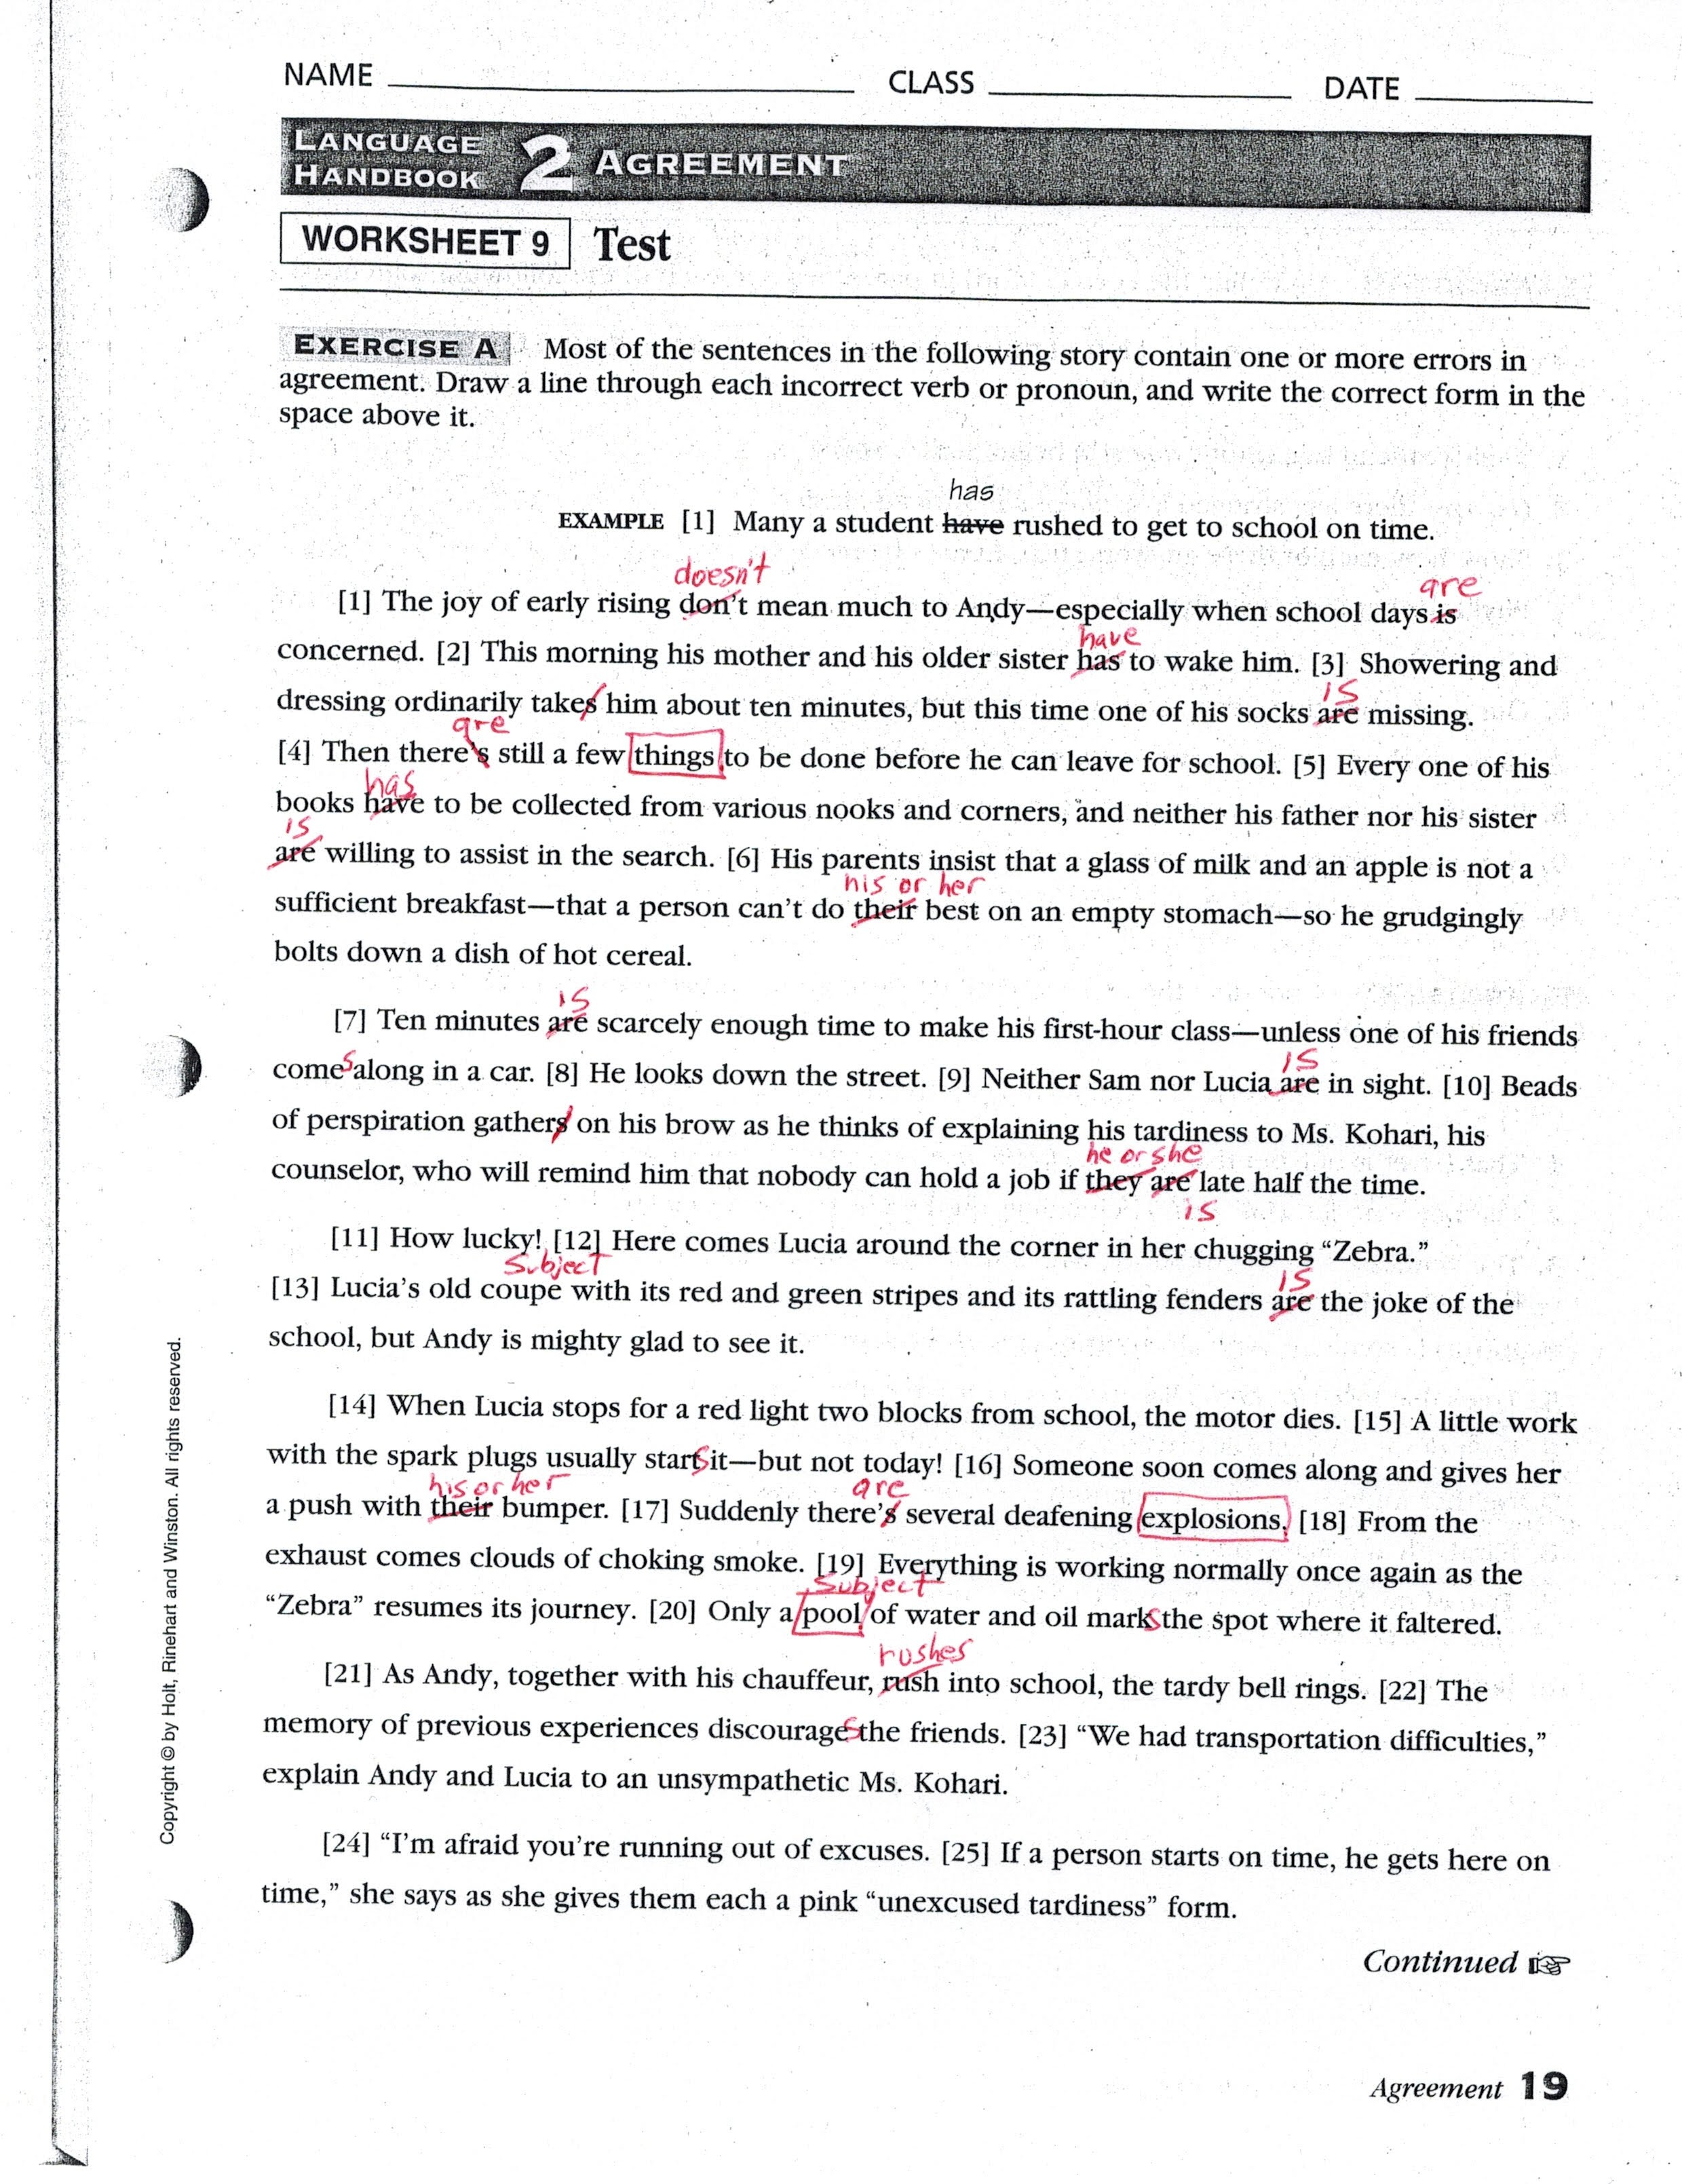 Worksheet Pronoun Antecedent Agreement Worksheet With